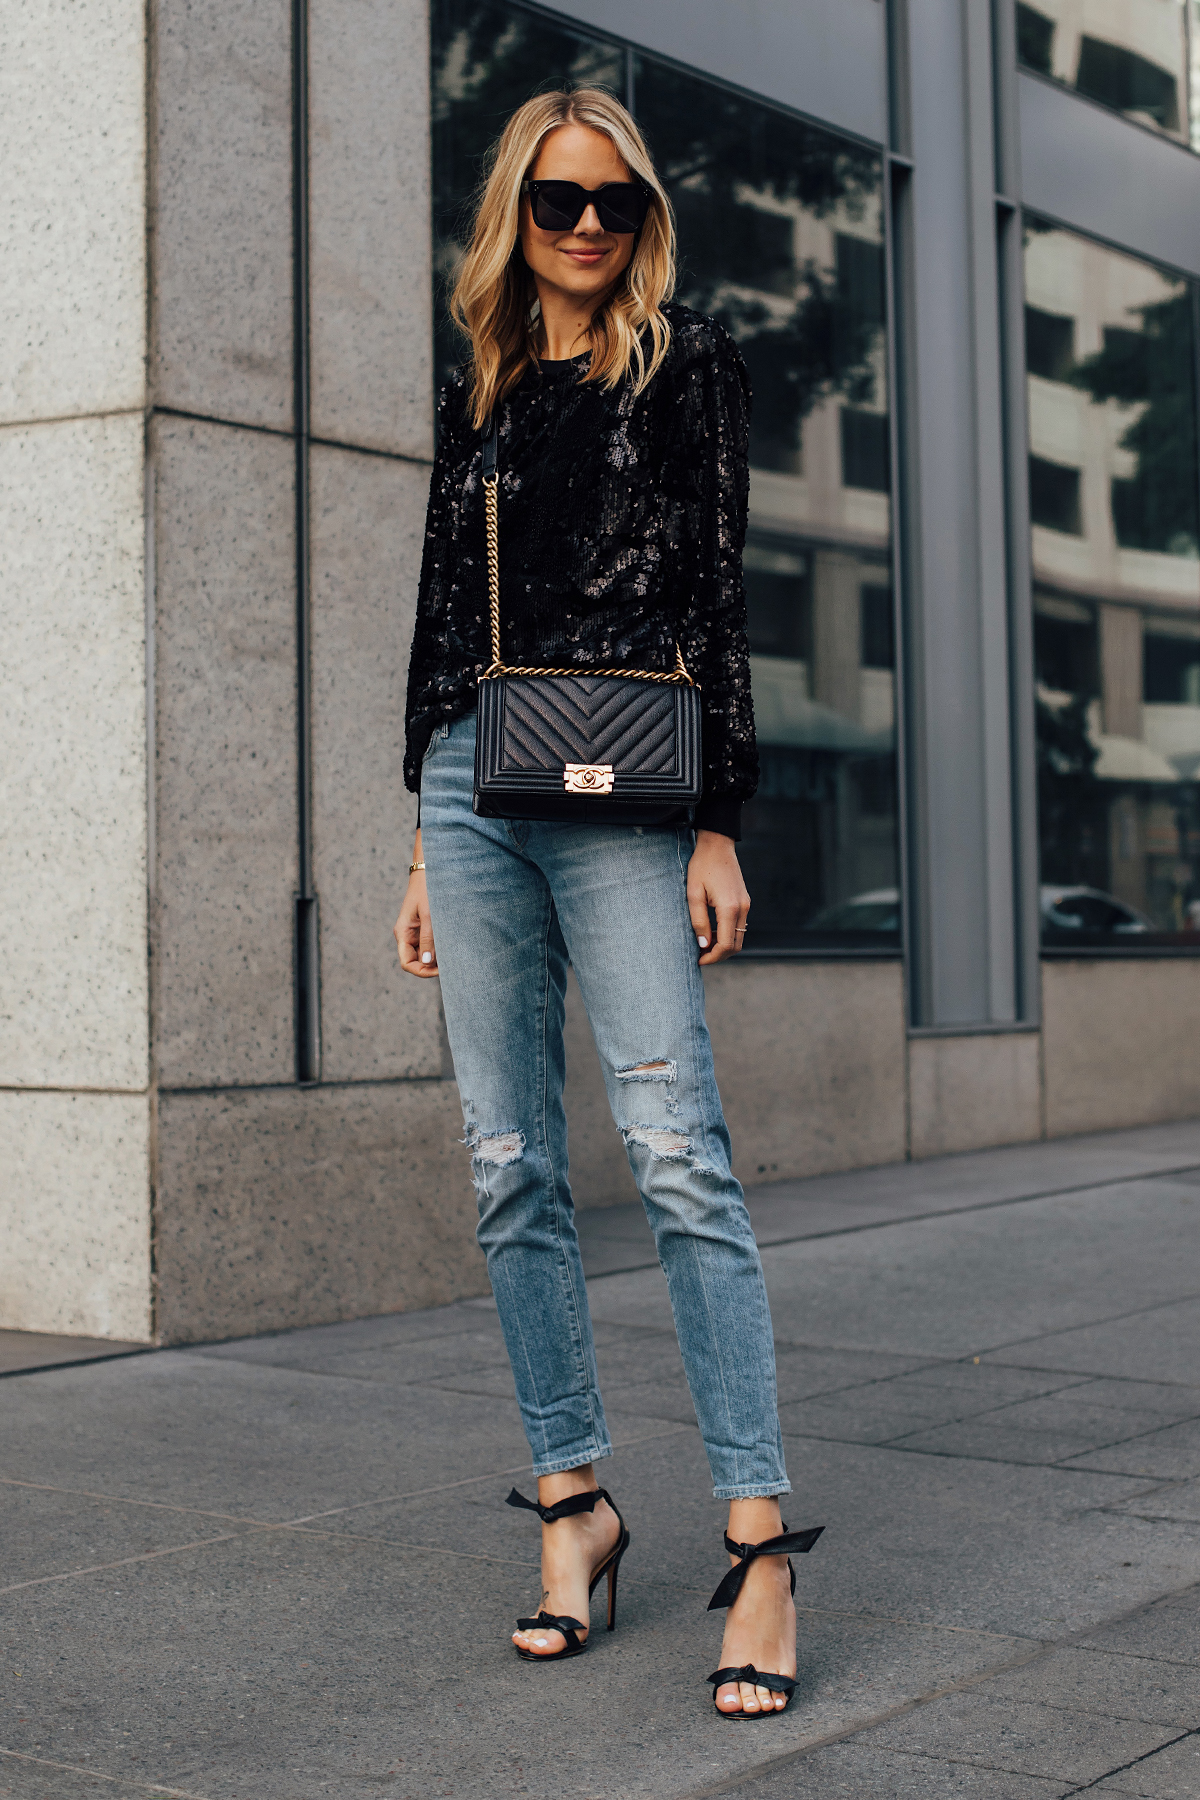 Blonde Woman Wearing Black Sequin Top Ripped Skinny Jeans Chanel Black Boy Bag Black Ankle Tie Heeled Sandals Fashion Jackson San Diego Fashion Blogger Street Style NYE Outfit